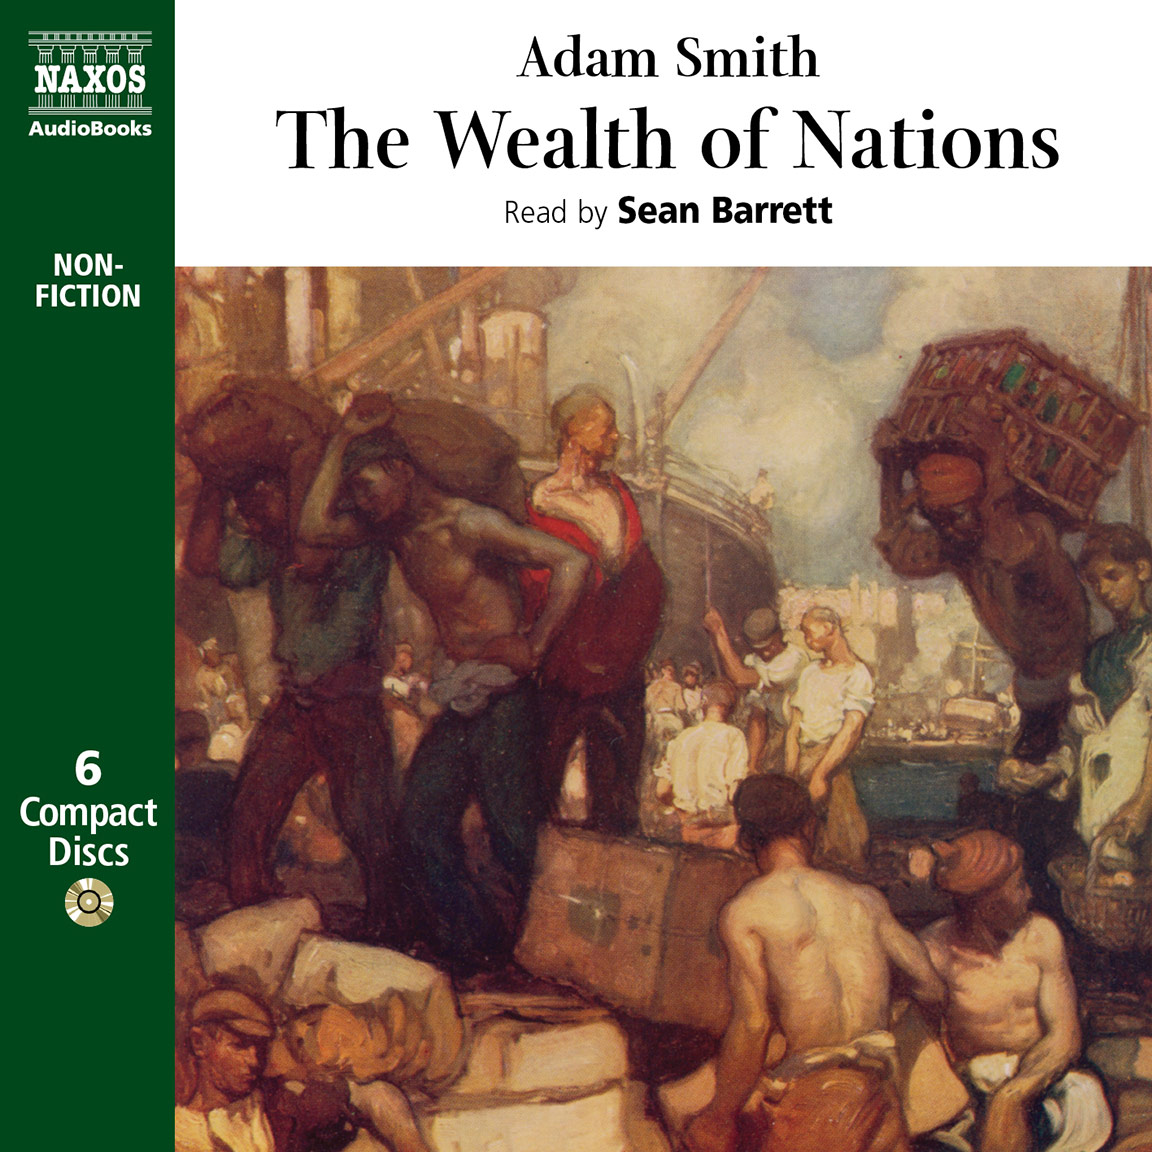 an introduction to the works of adam smith an economist Adam smith was a scottish social philosopher and political economist and the author of the wealth of nations, considered the first book written on economics.